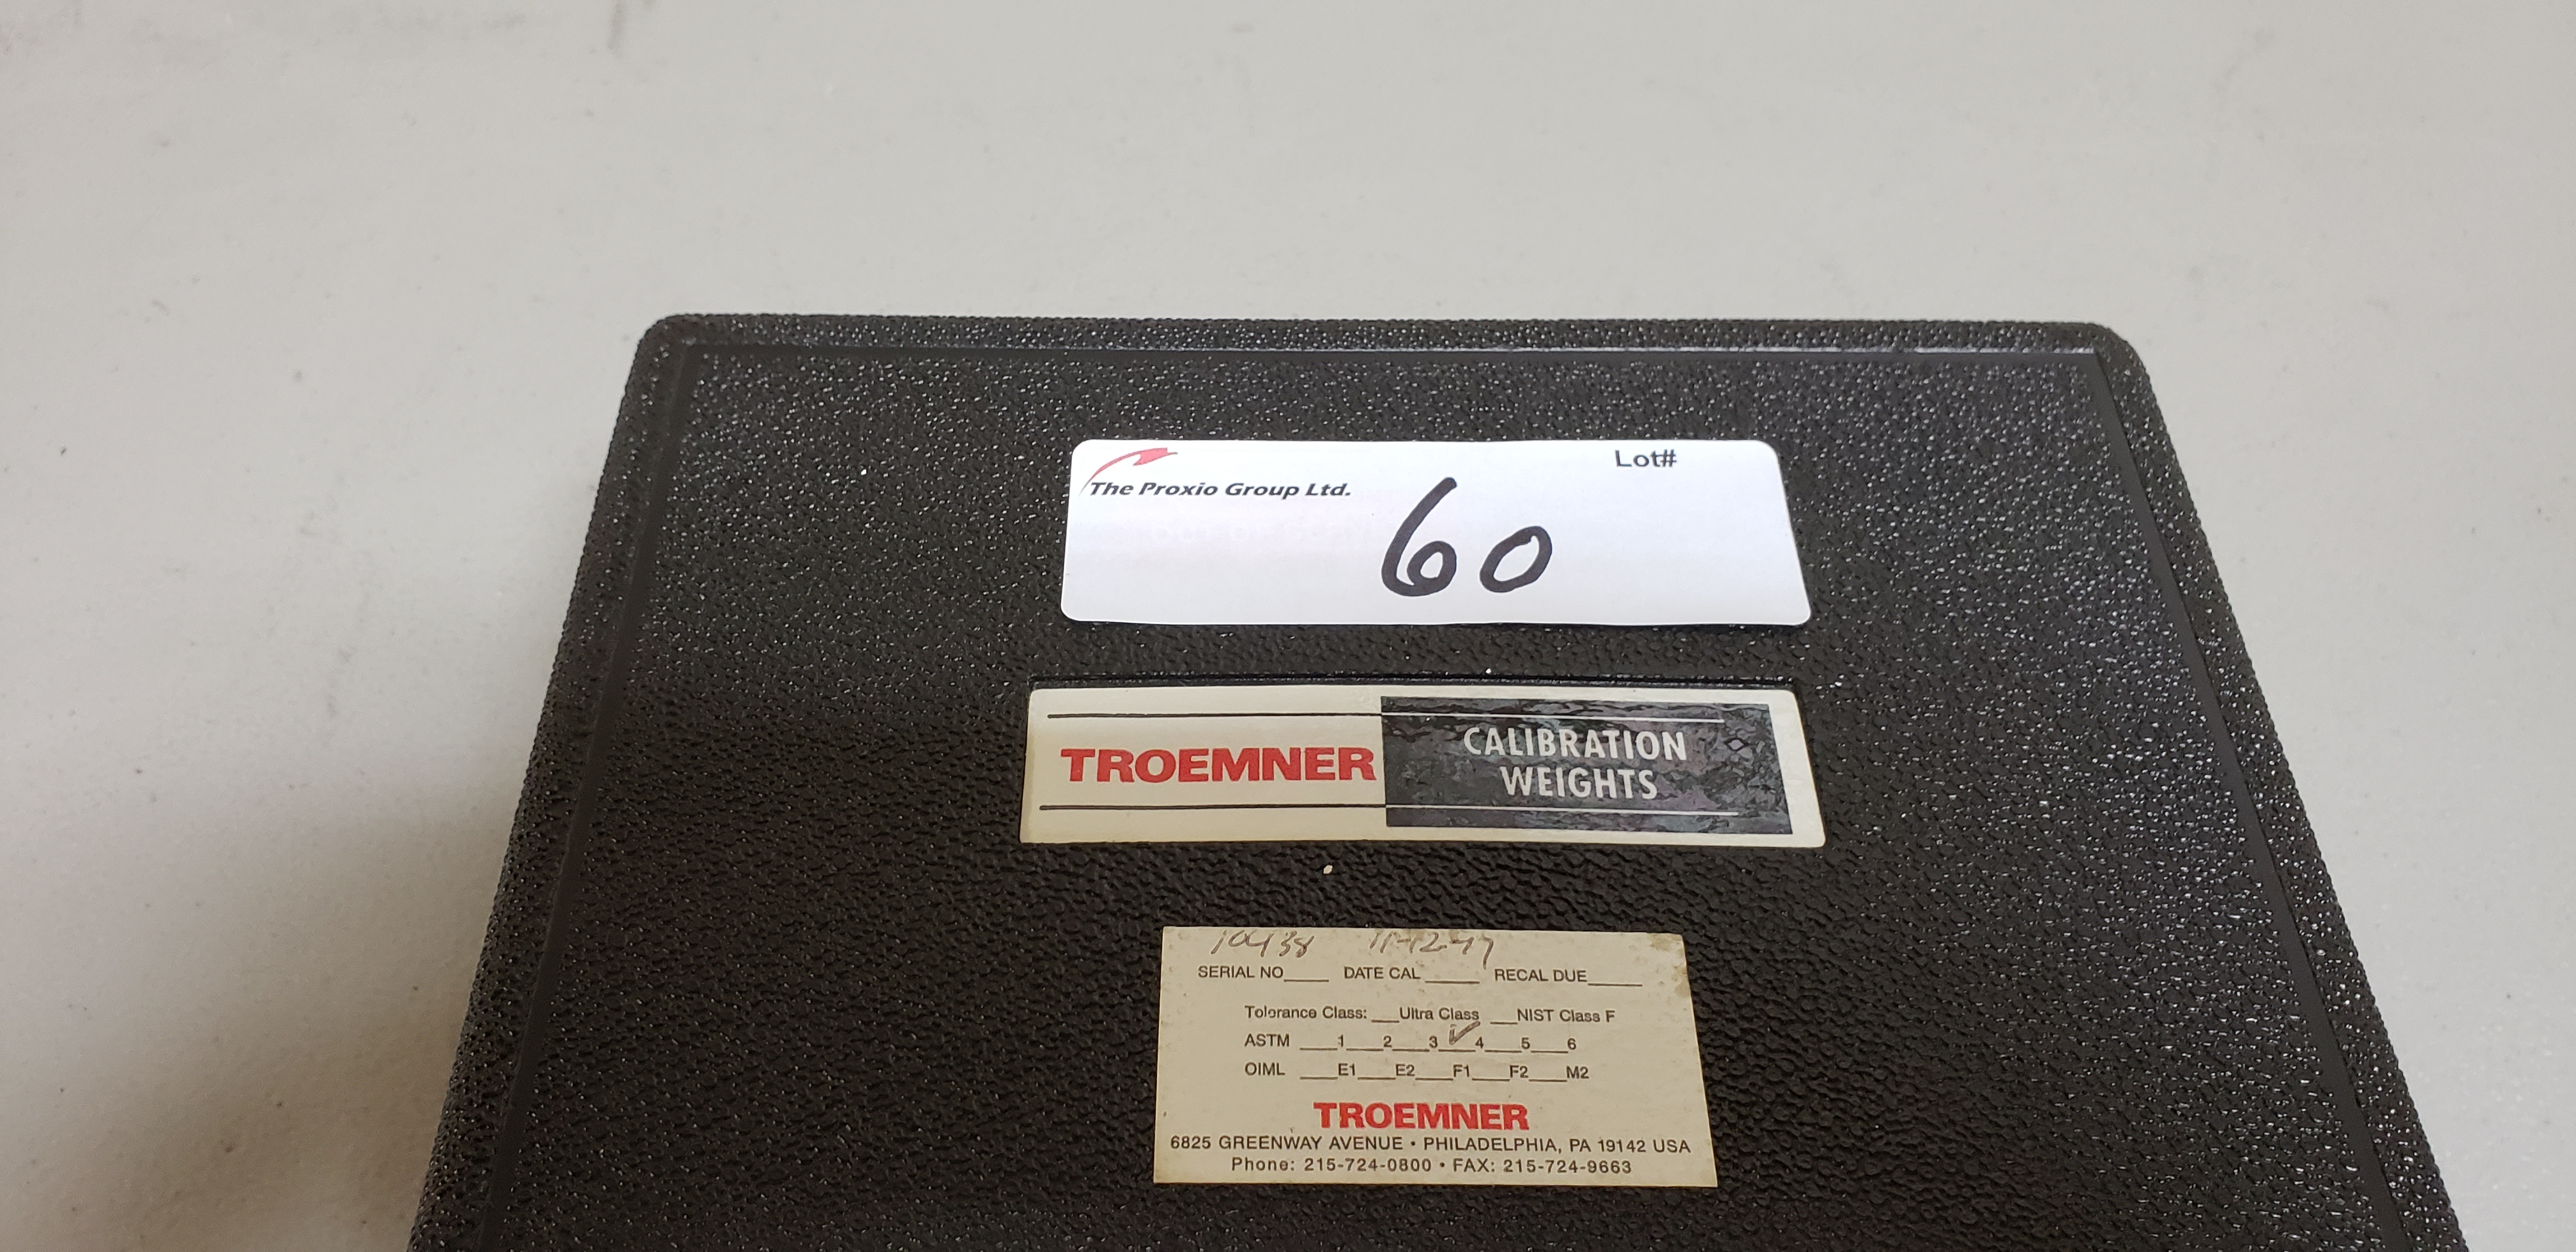 Lot 60 - Troemner 2 Kg Calibration Weight Stainless Steel Test Weight